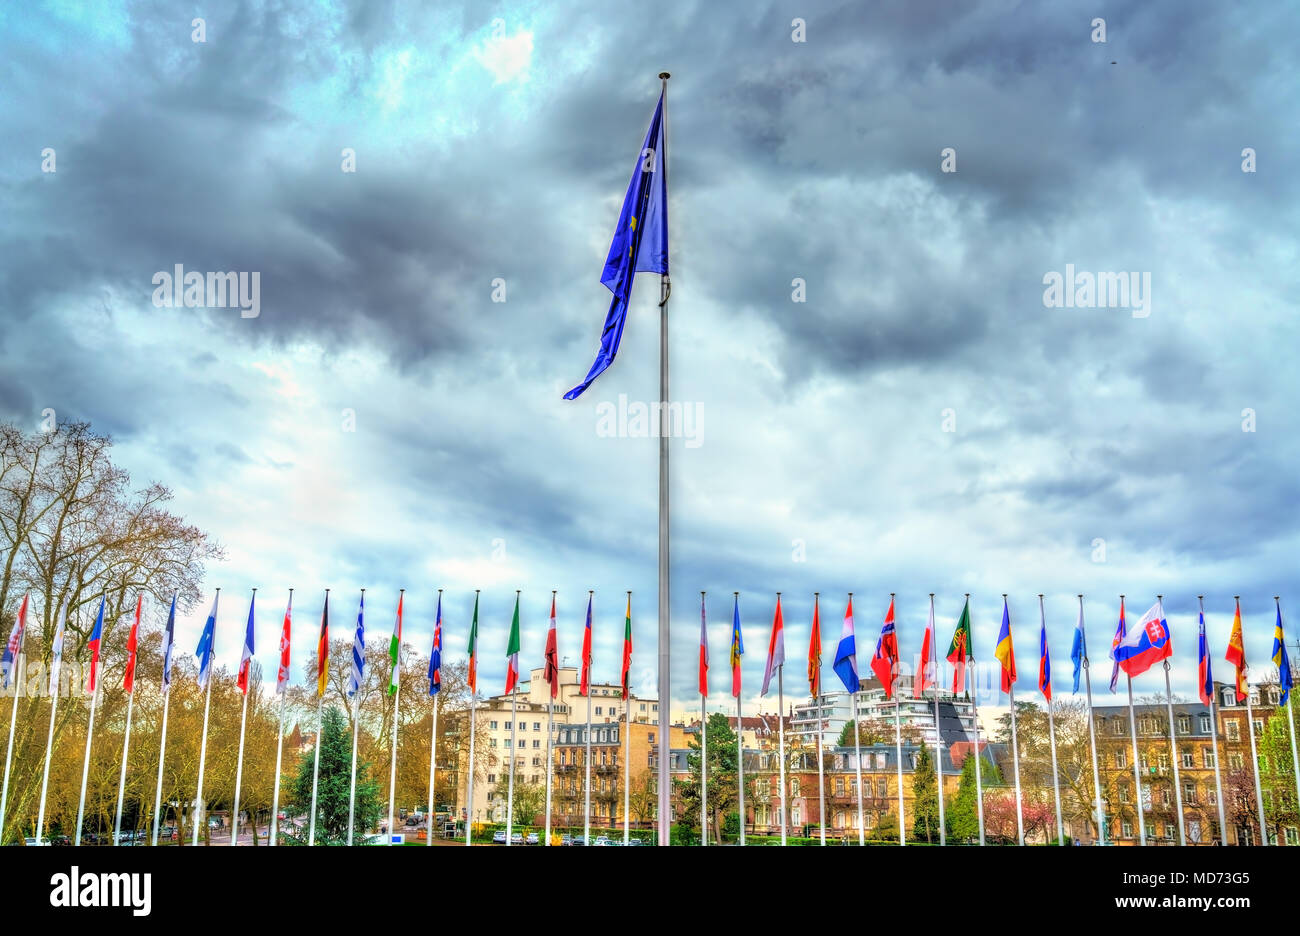 Flags of the member states of the Council of Europe in Strasbourg, France - Stock Image